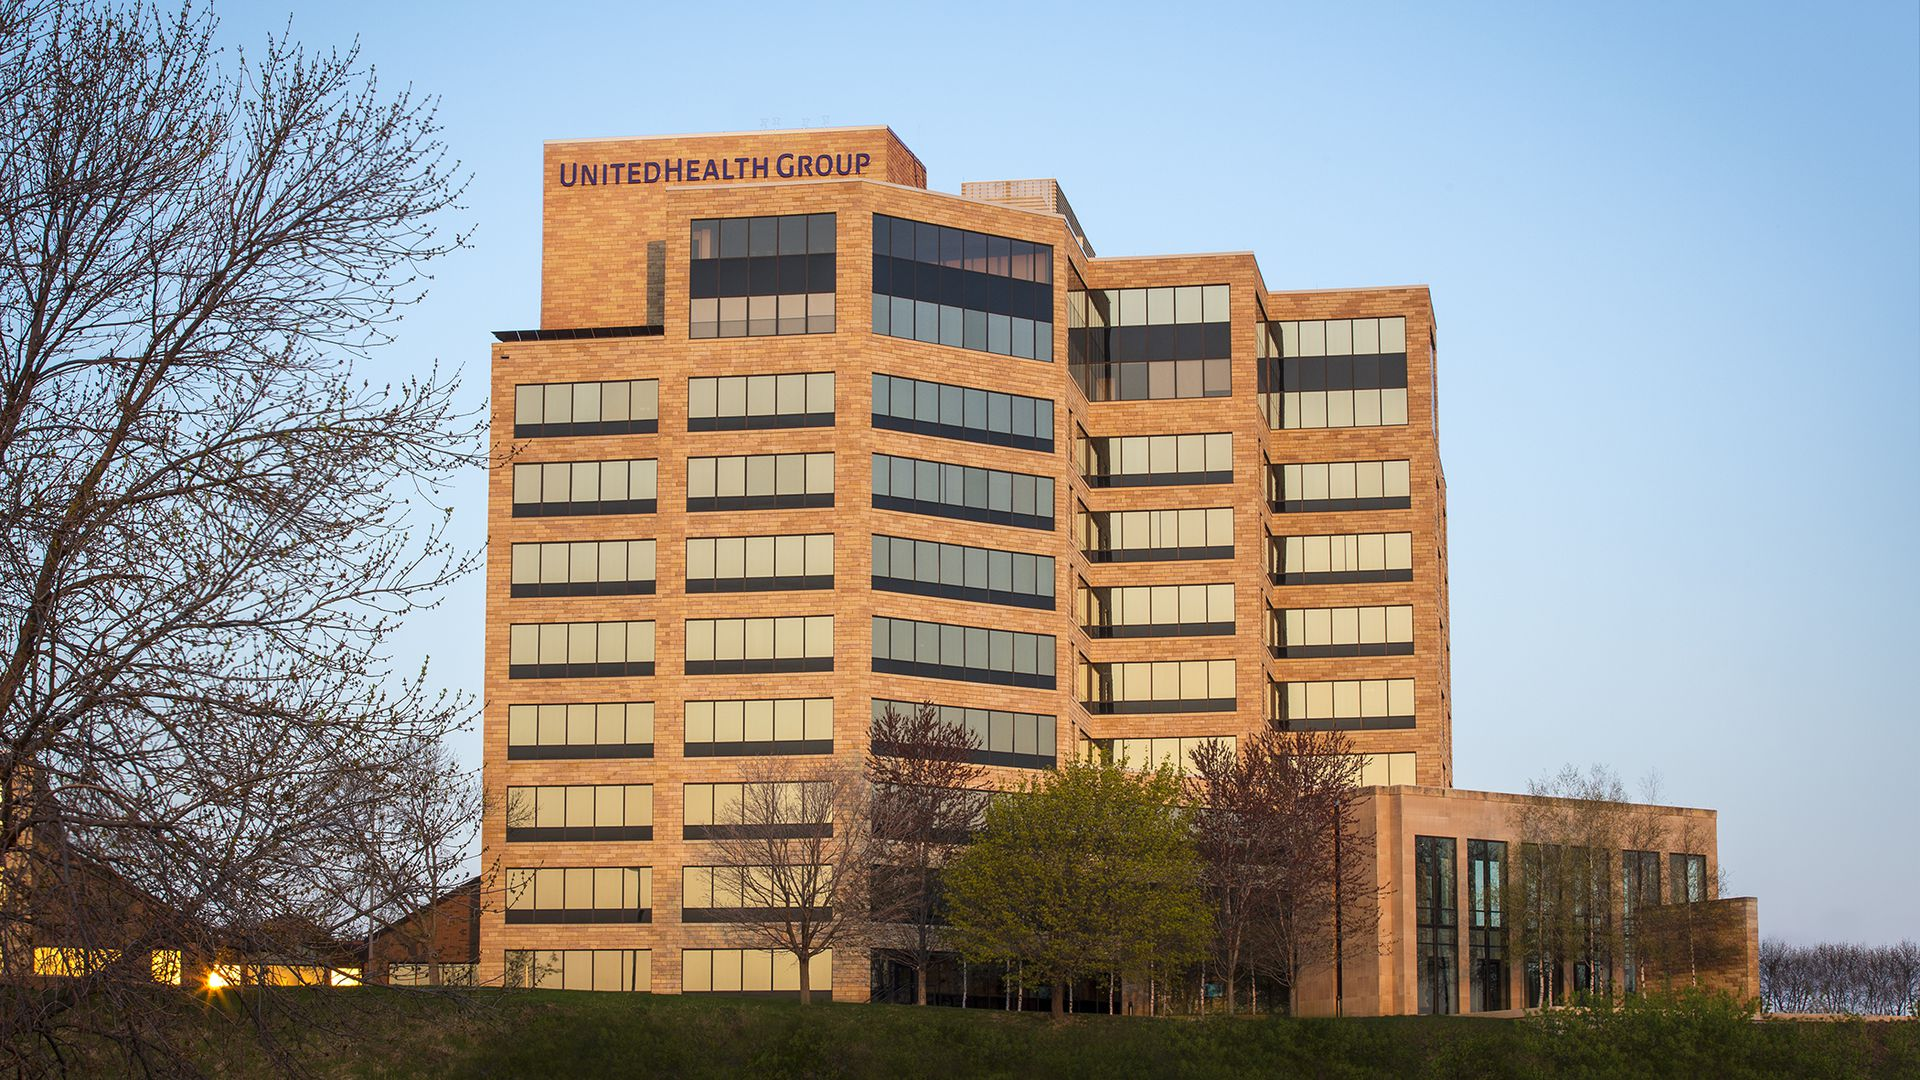 UnitedHealth Group headquarters in Minnesota.